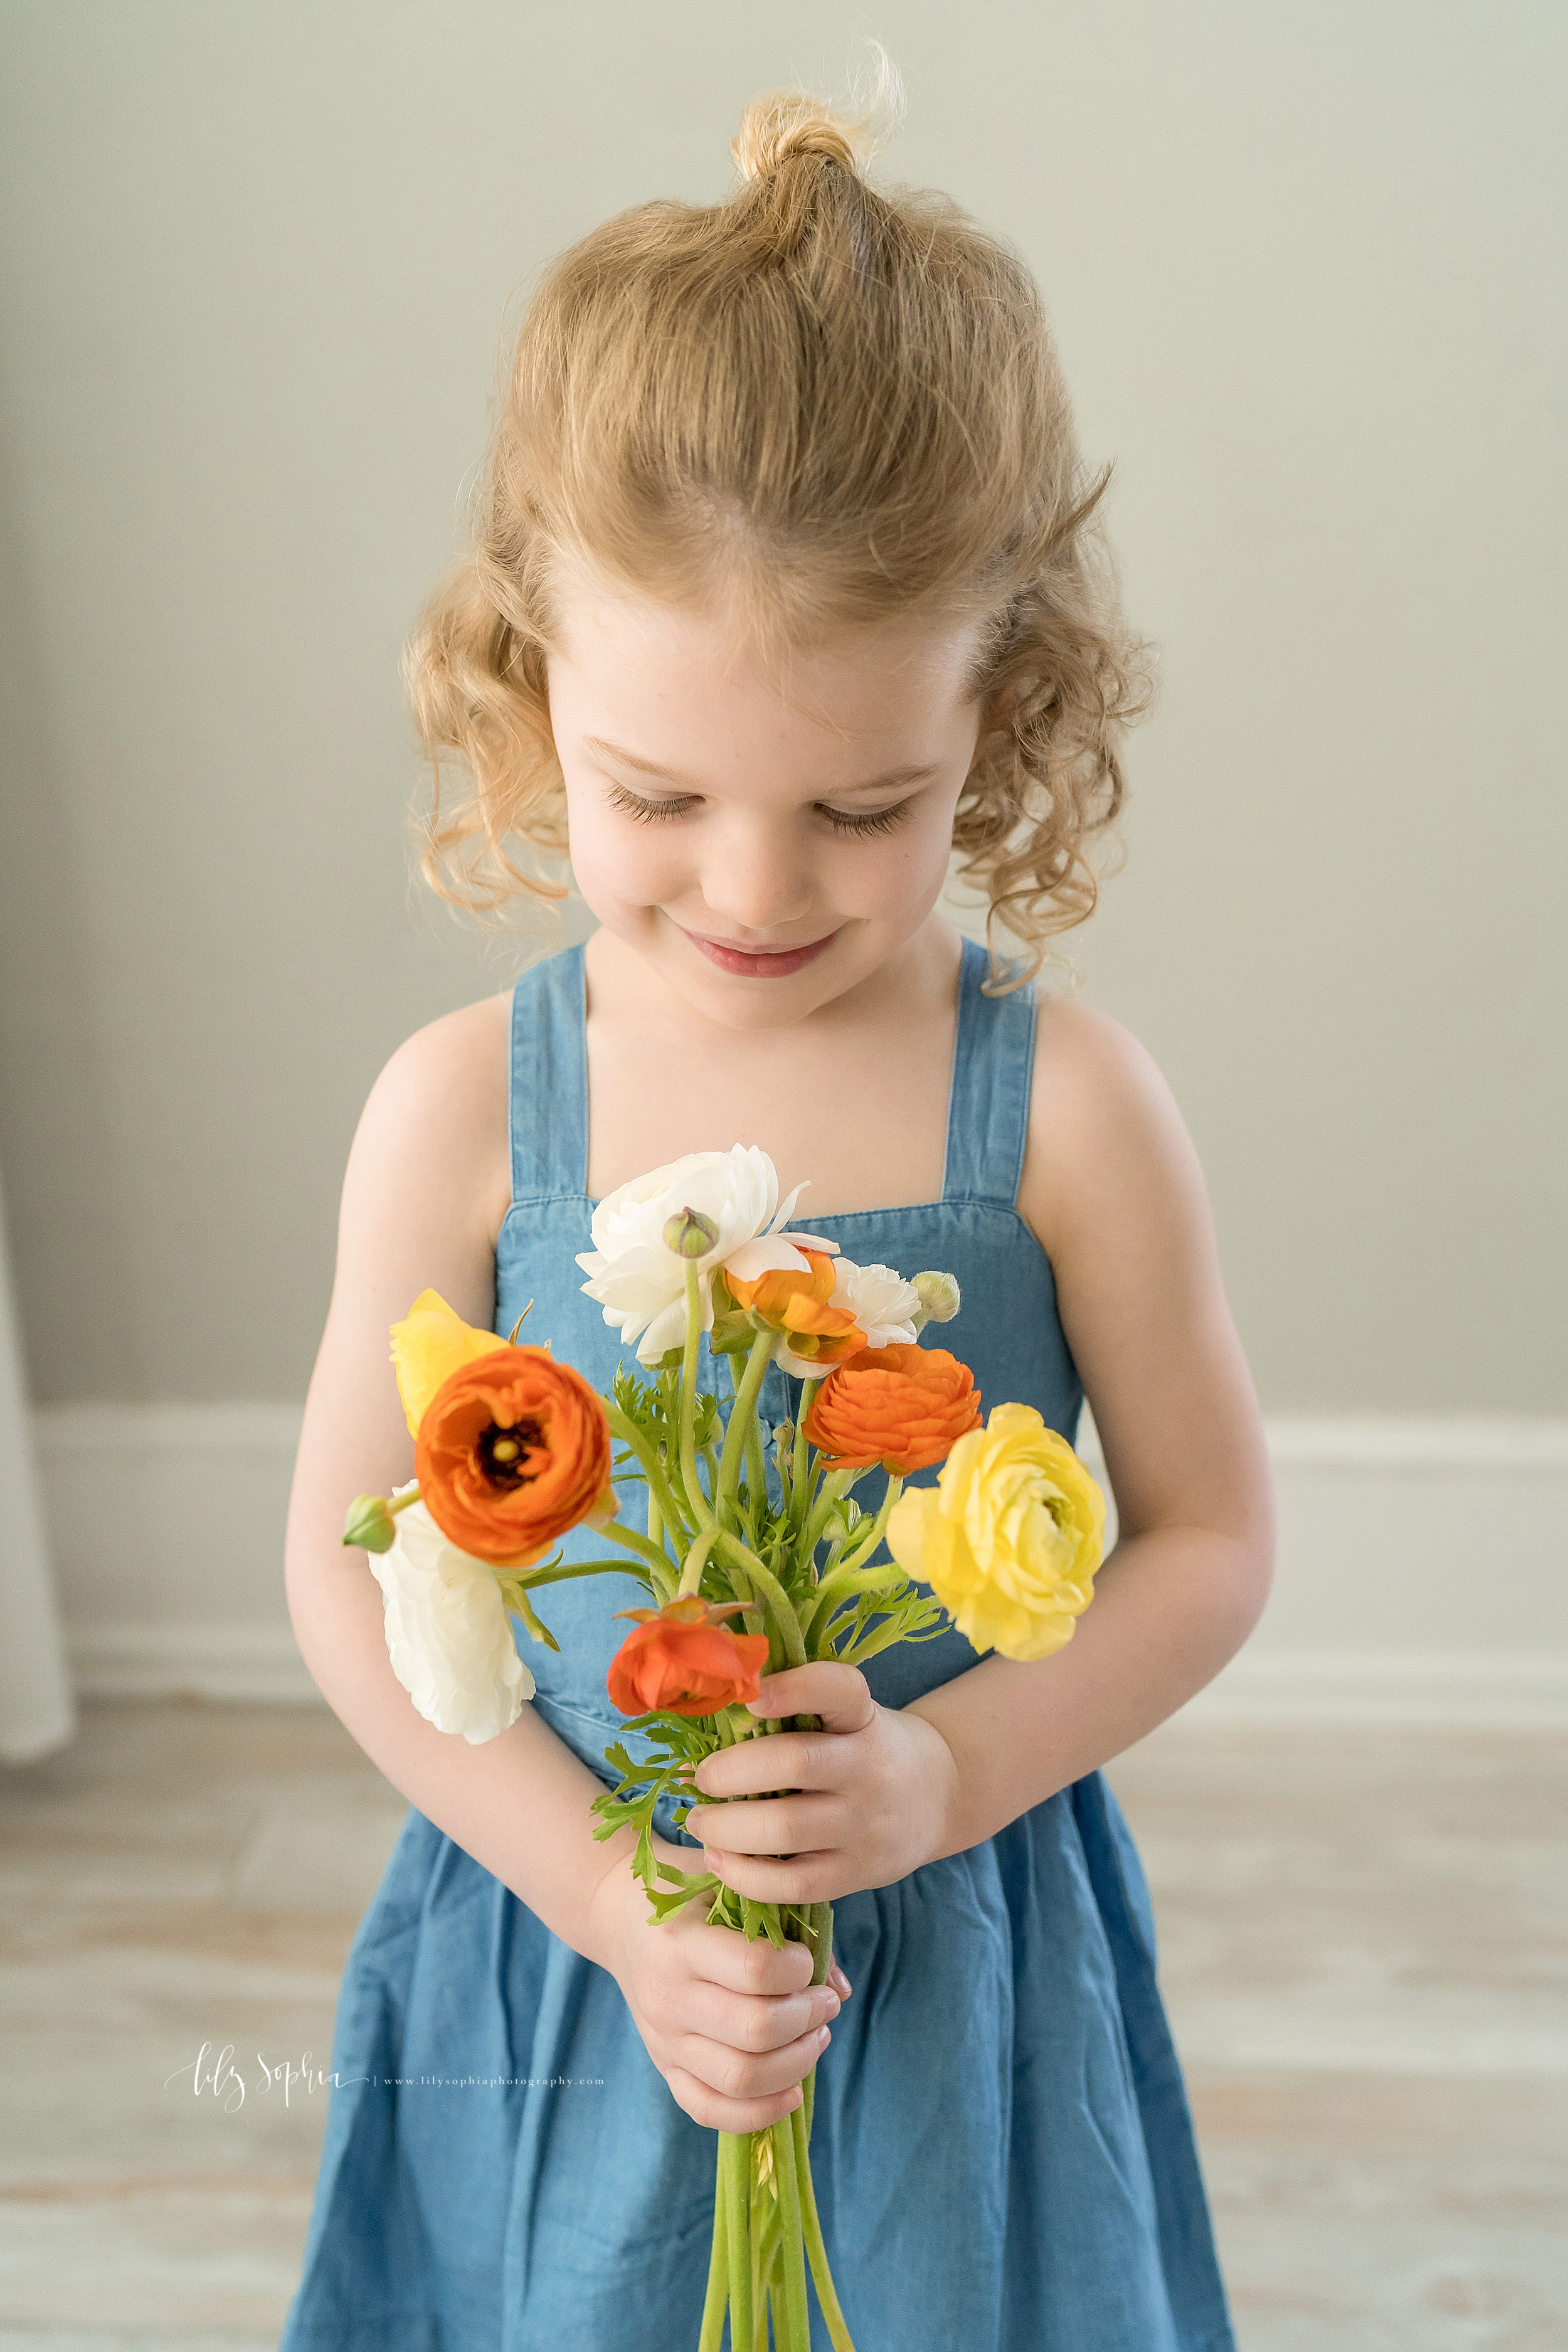 Milestone photo of a four year old little girl holding a bouquet of flowers and wearing a denim sleeveless jumper in a natural light studio in Atlanta.